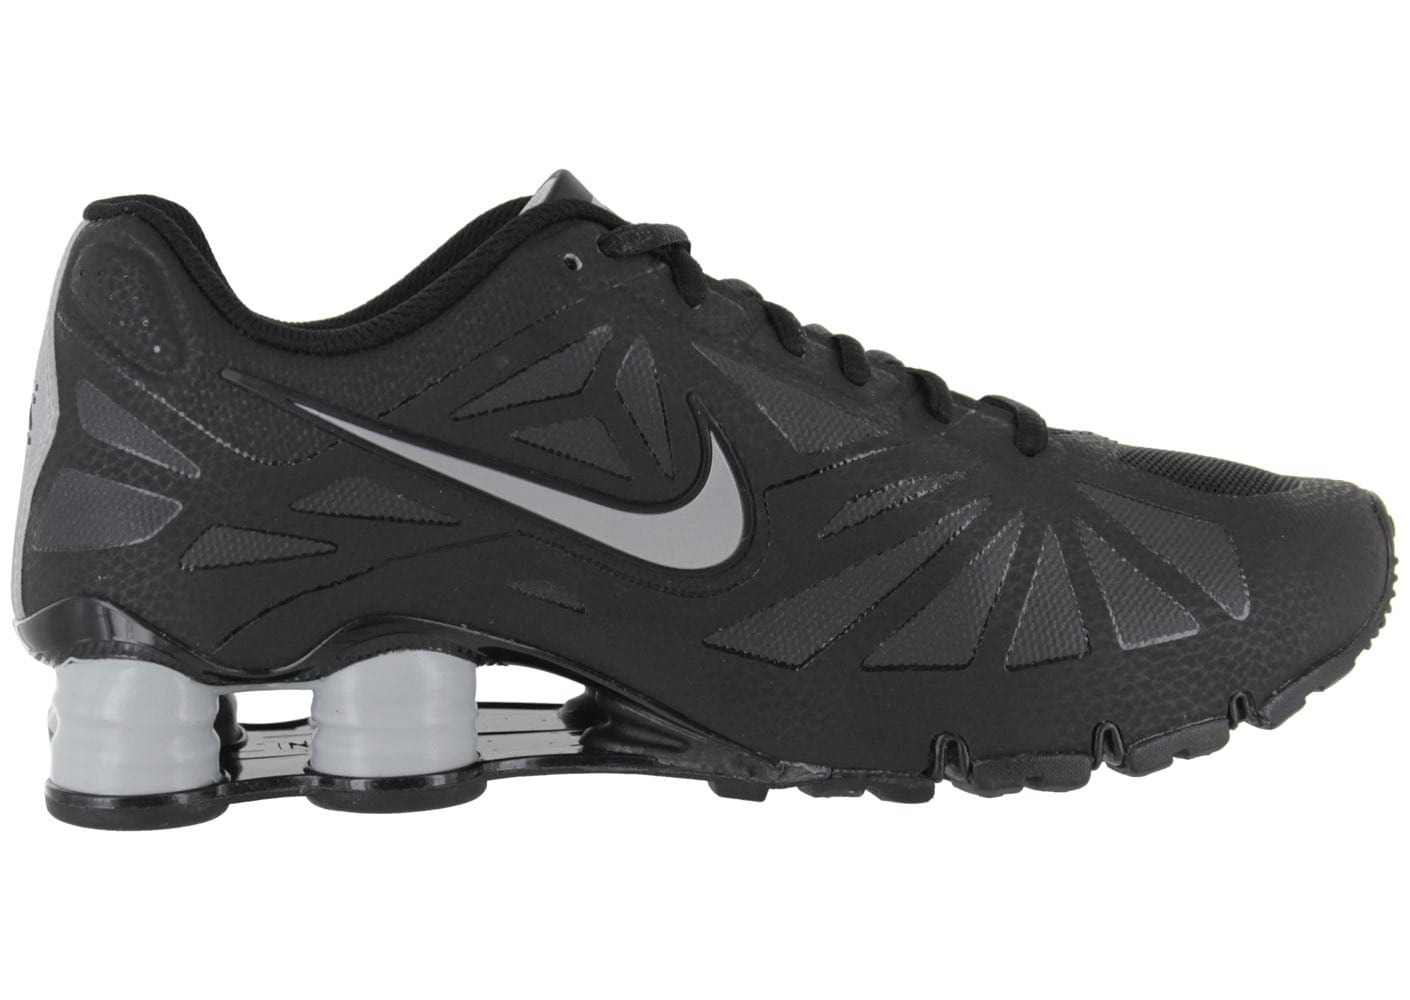 buy best official store buying new Nike Shox Turbo 14 Noire - Chaussures Baskets homme - Chausport